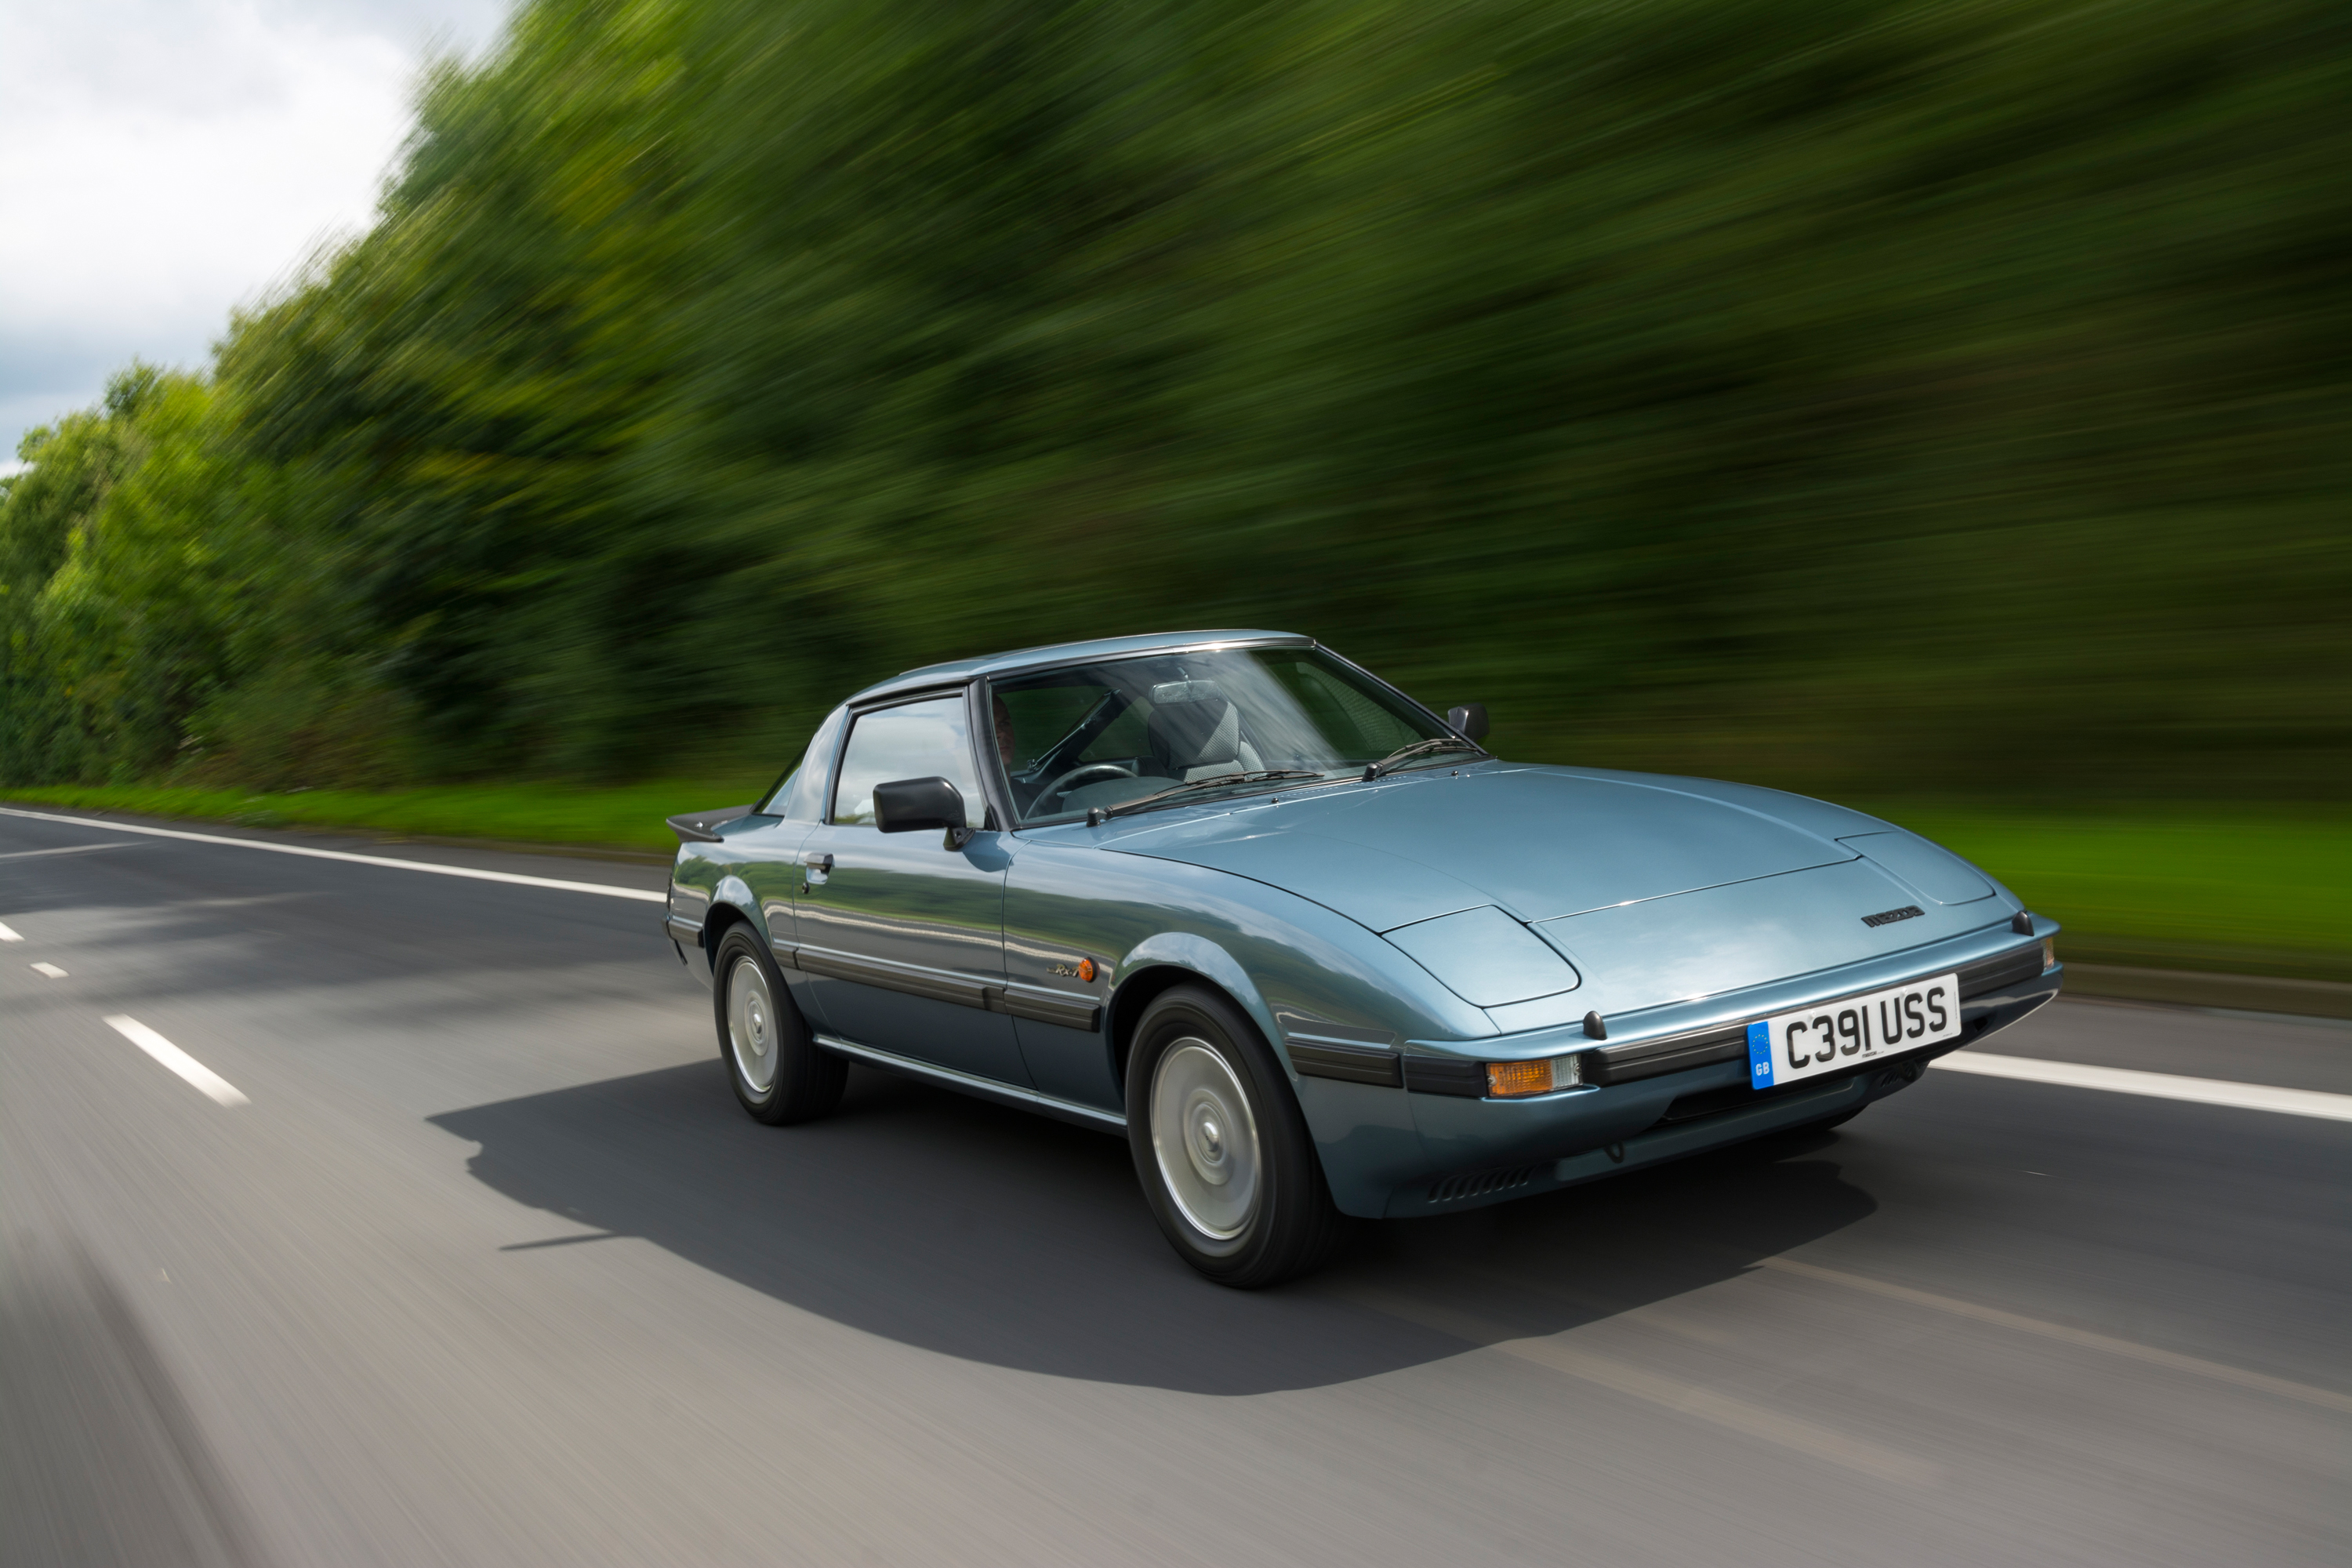 The sleek design of the RX-7 is hard to miss